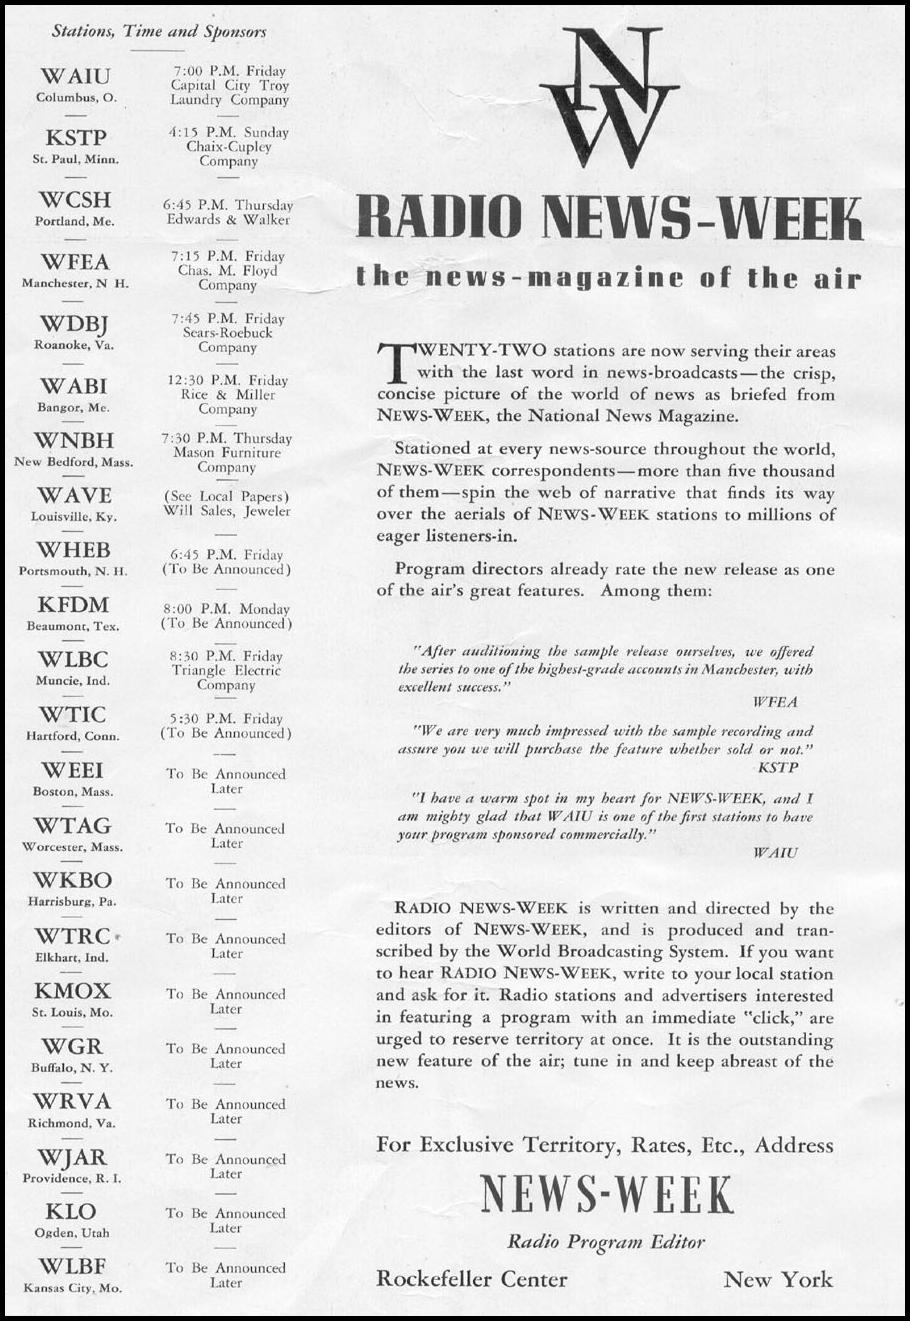 RADIO NEWS-WEEK NEWSWEEK 05/04/1935 INSIDE FRONT